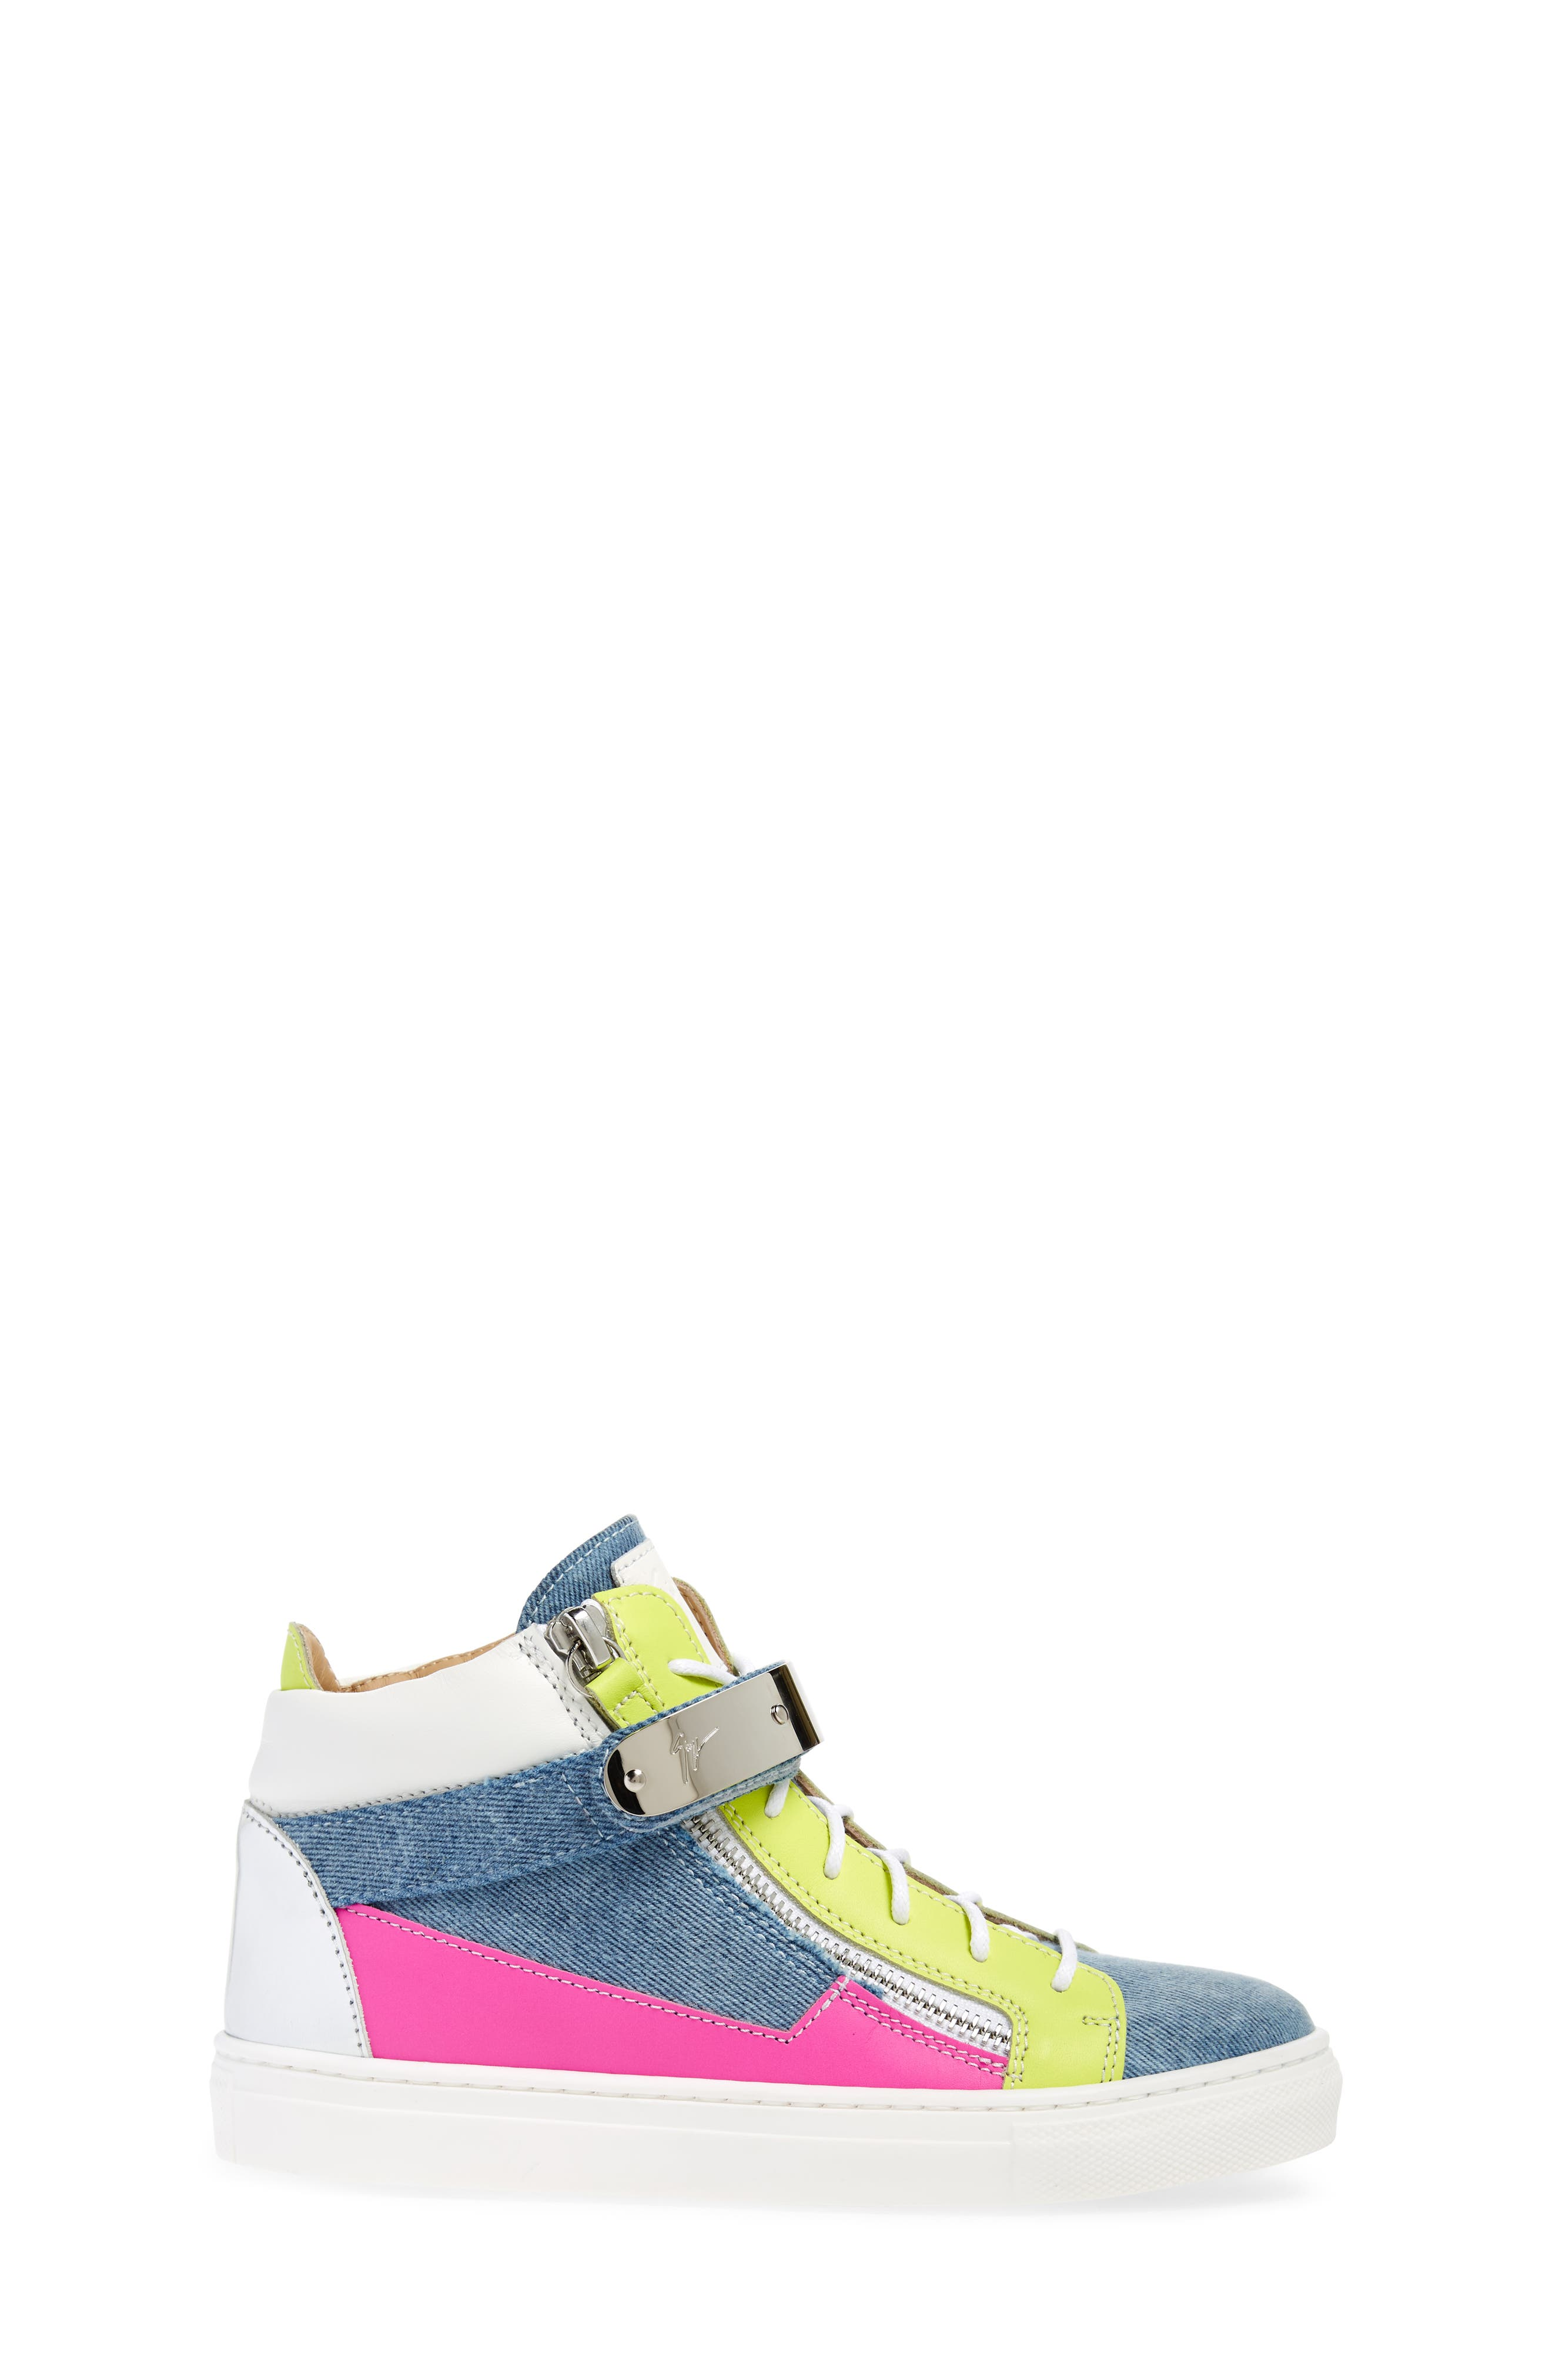 London High Top Sneaker,                             Alternate thumbnail 3, color,                             Multi